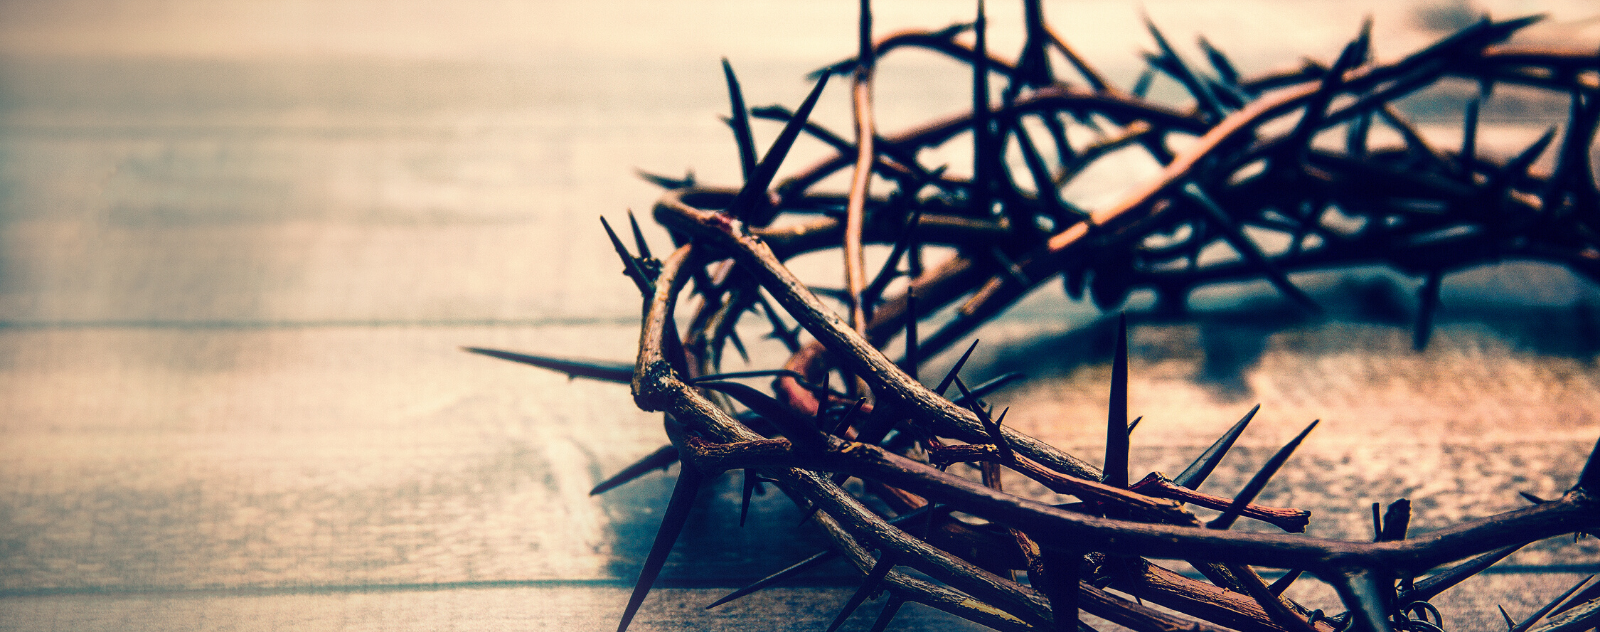 crown of thorns in the bible